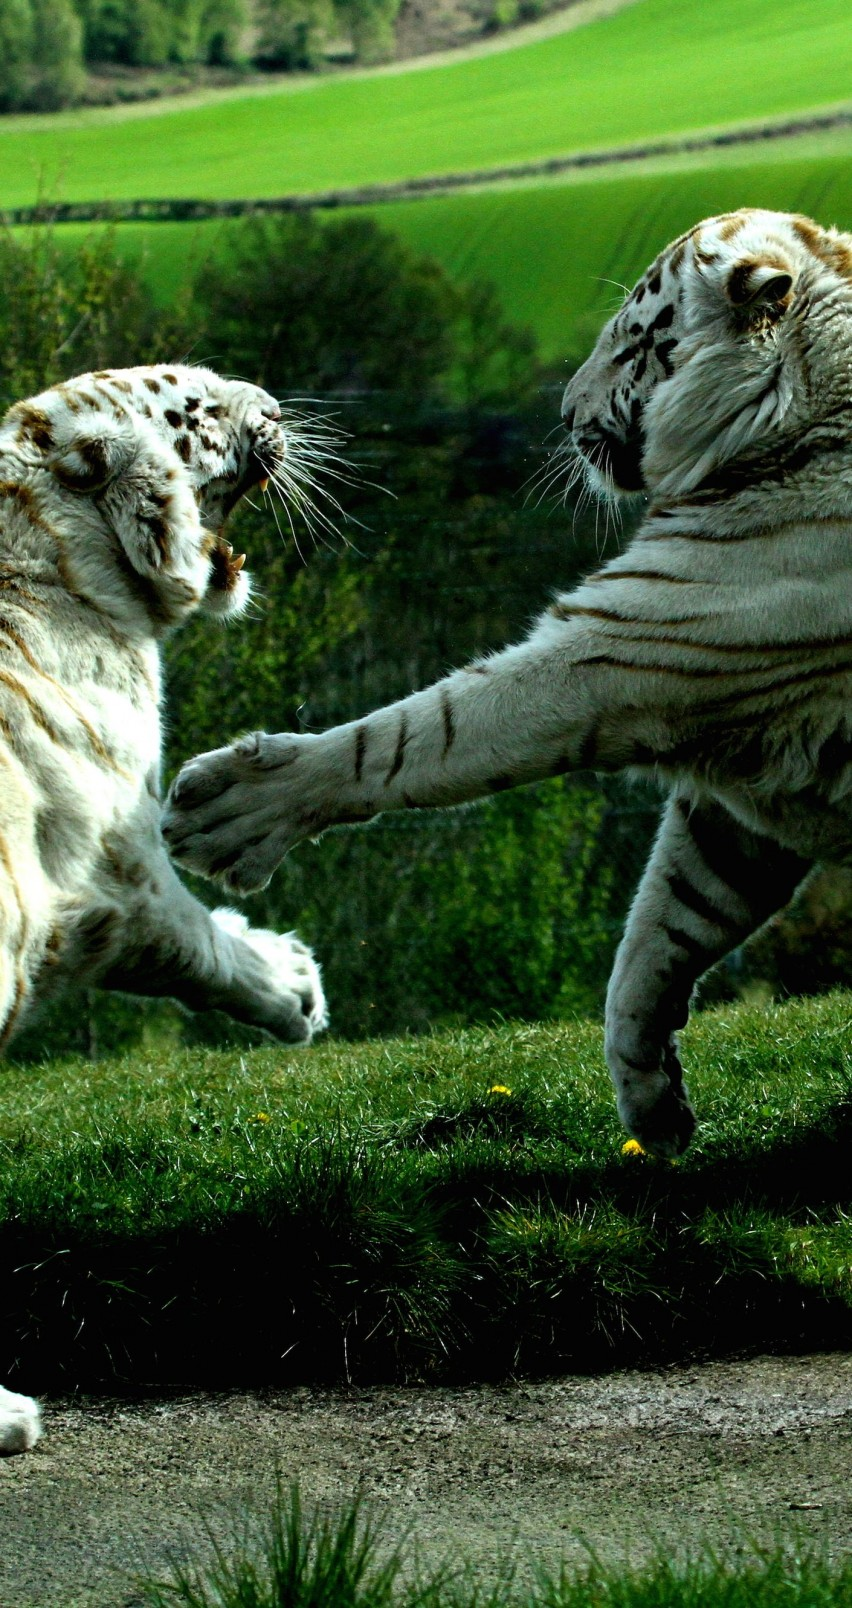 White Tigers Fighting Wallpaper for Apple iPhone 6 / 6s